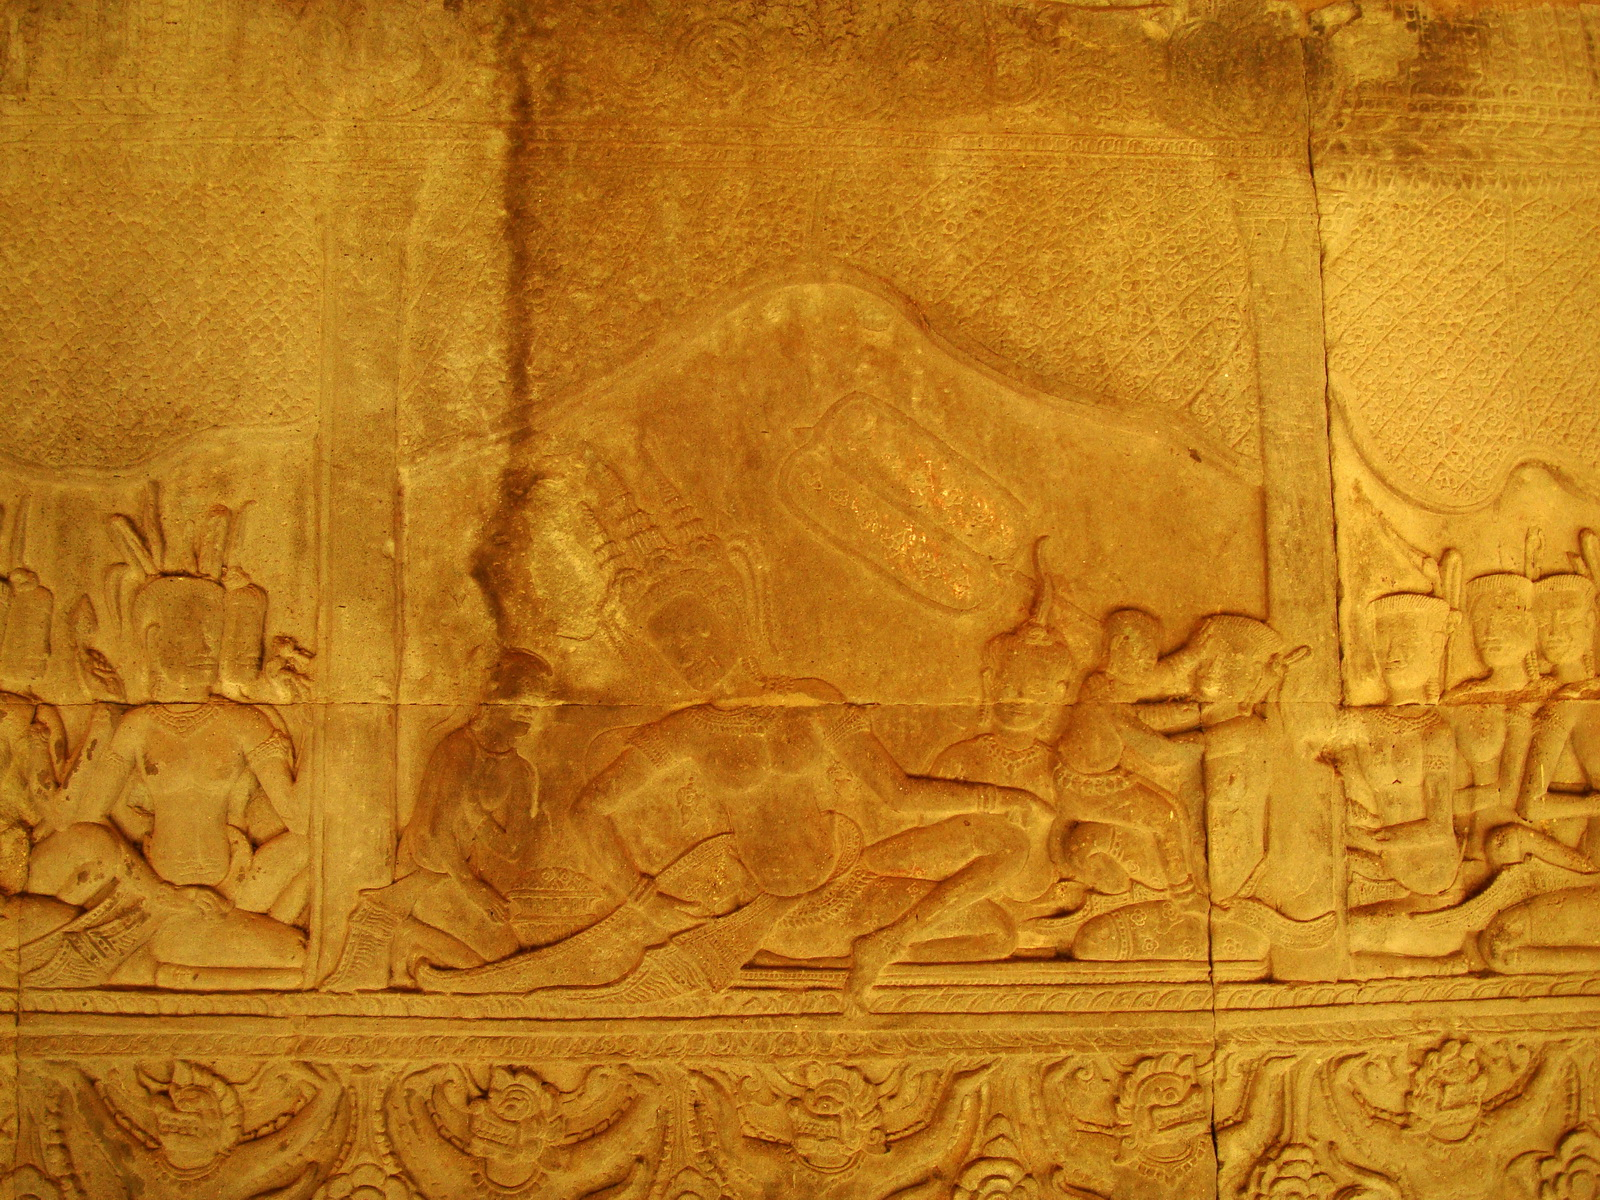 Angkor Wat Bas relief S Gallery E Wing Heavens and Hells 70